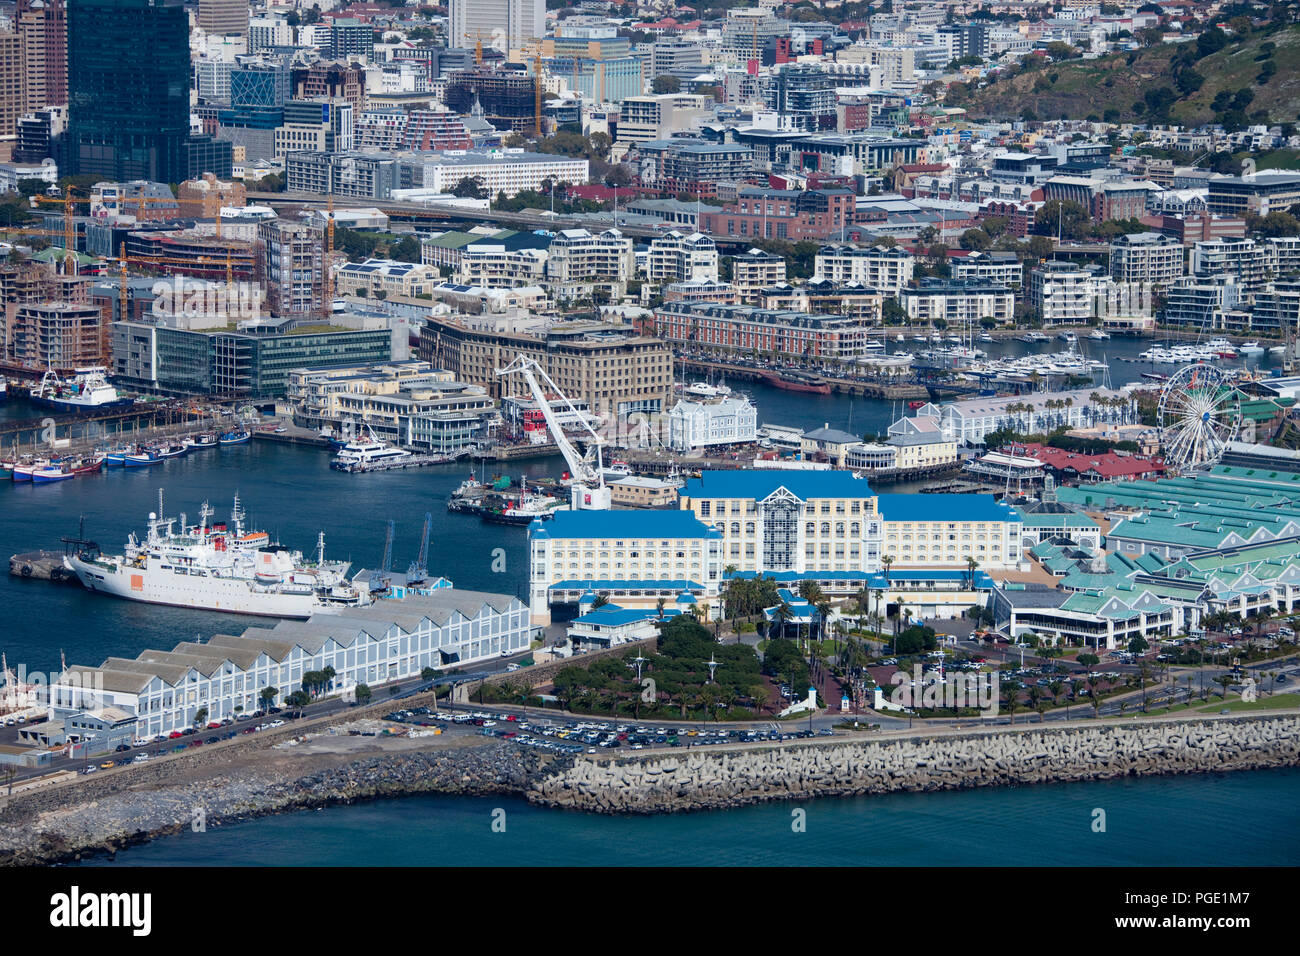 Victoria and Alfred Waterfront, Cape Town, South Africa, Aerial view. Stock Photo